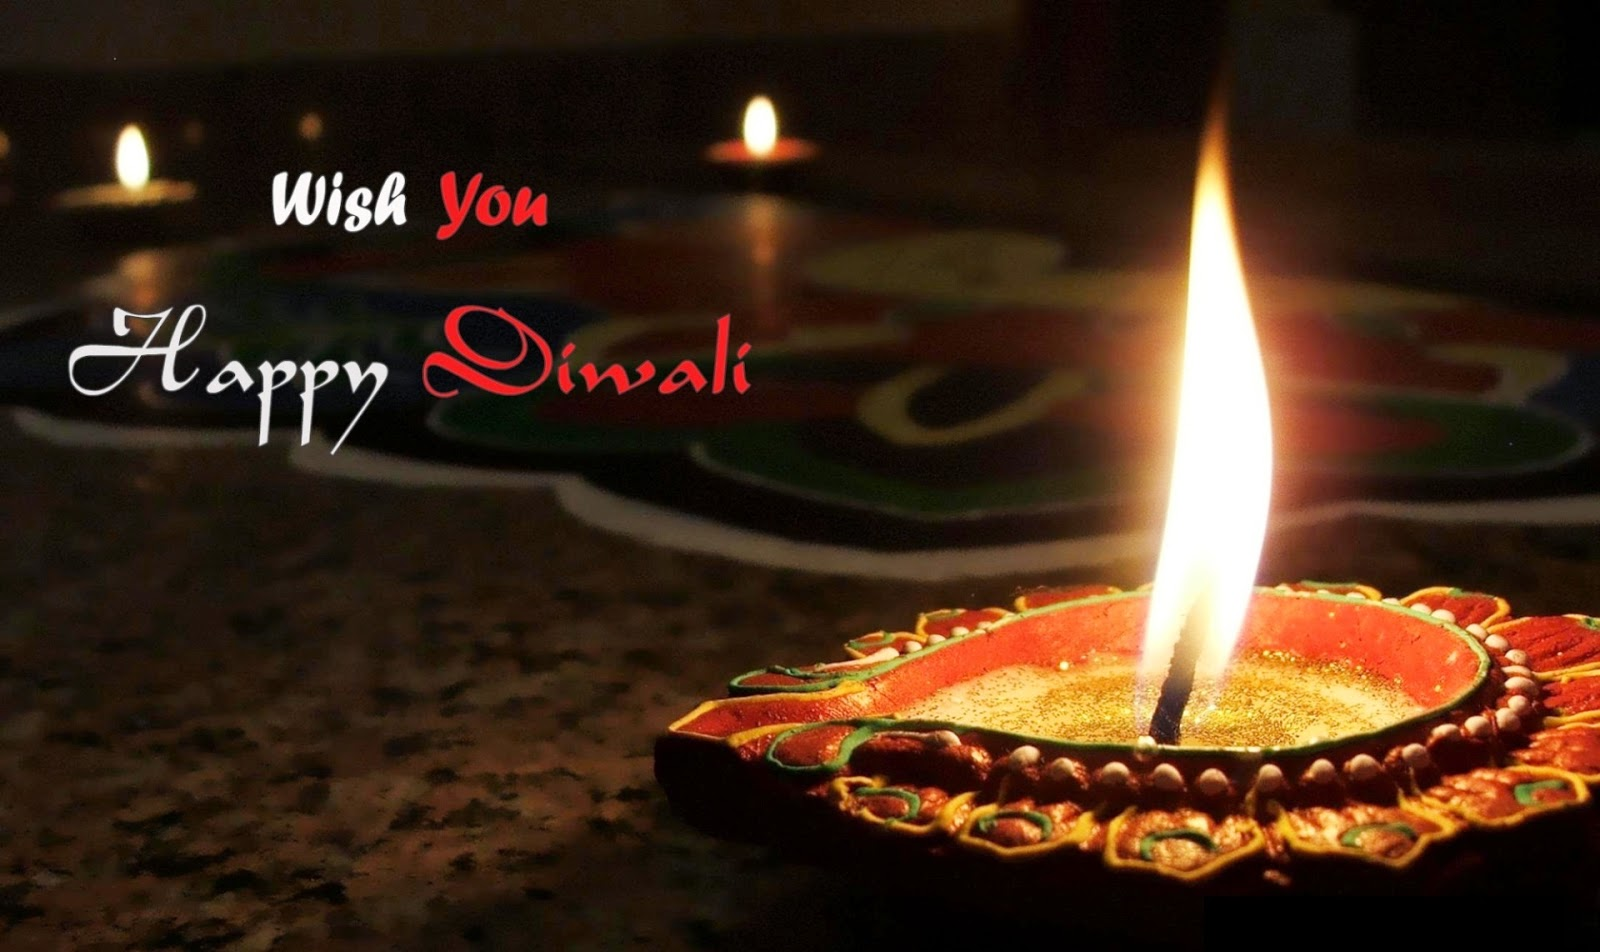 Happy Diwali Festival The Festival Of Lights And Colors Is For One